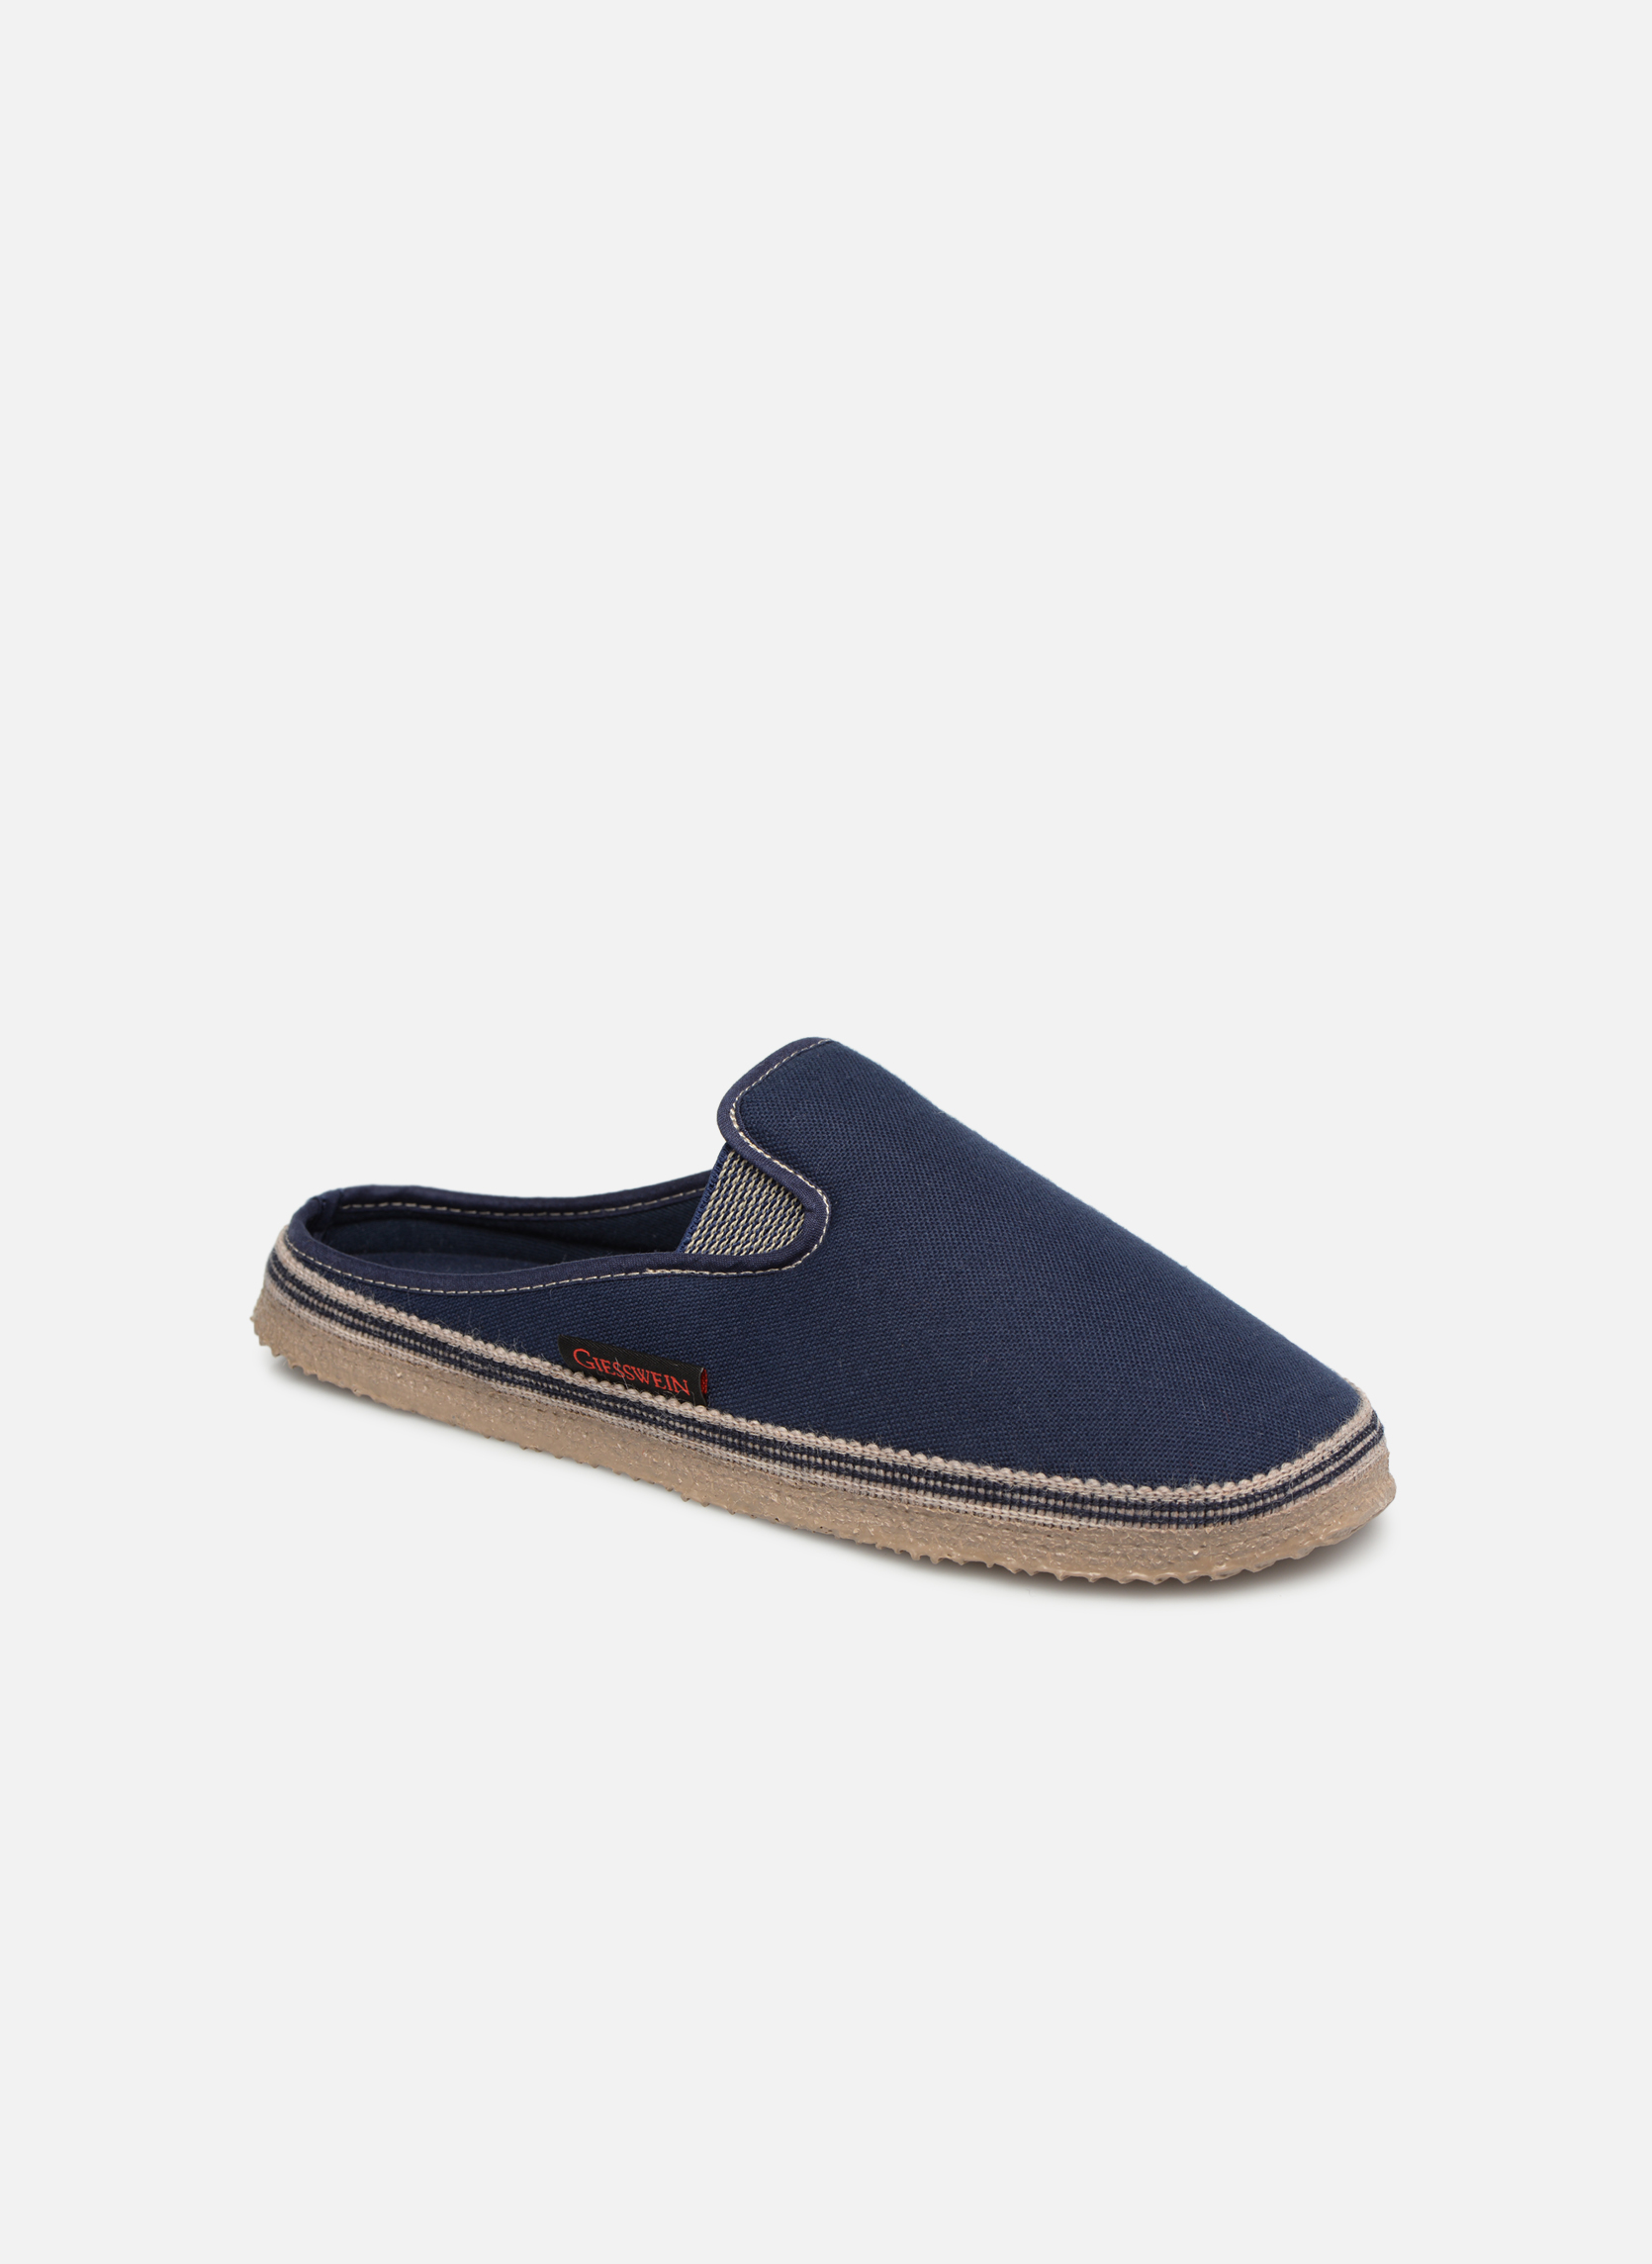 Chaussons Homme Petersdorf